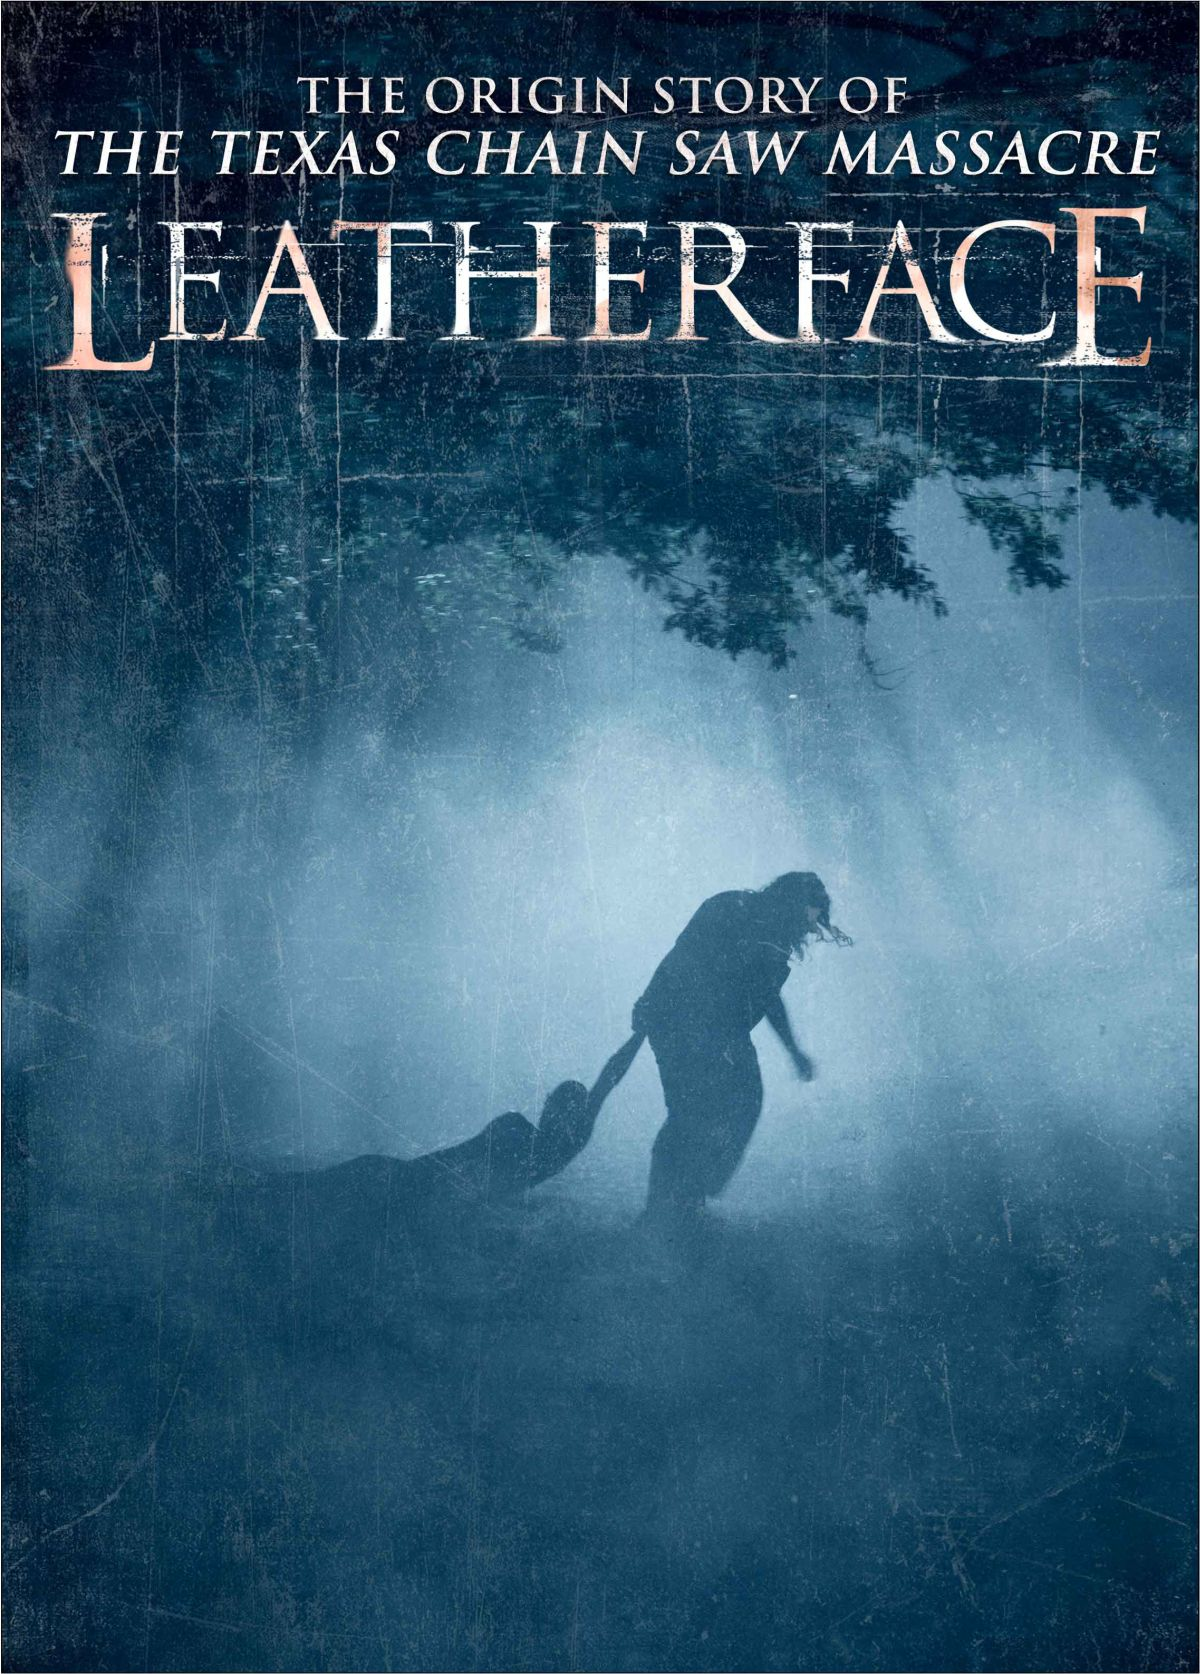 new-trailer-for-the-texas-chainsaw-massacre-prequel-film-leatherface1